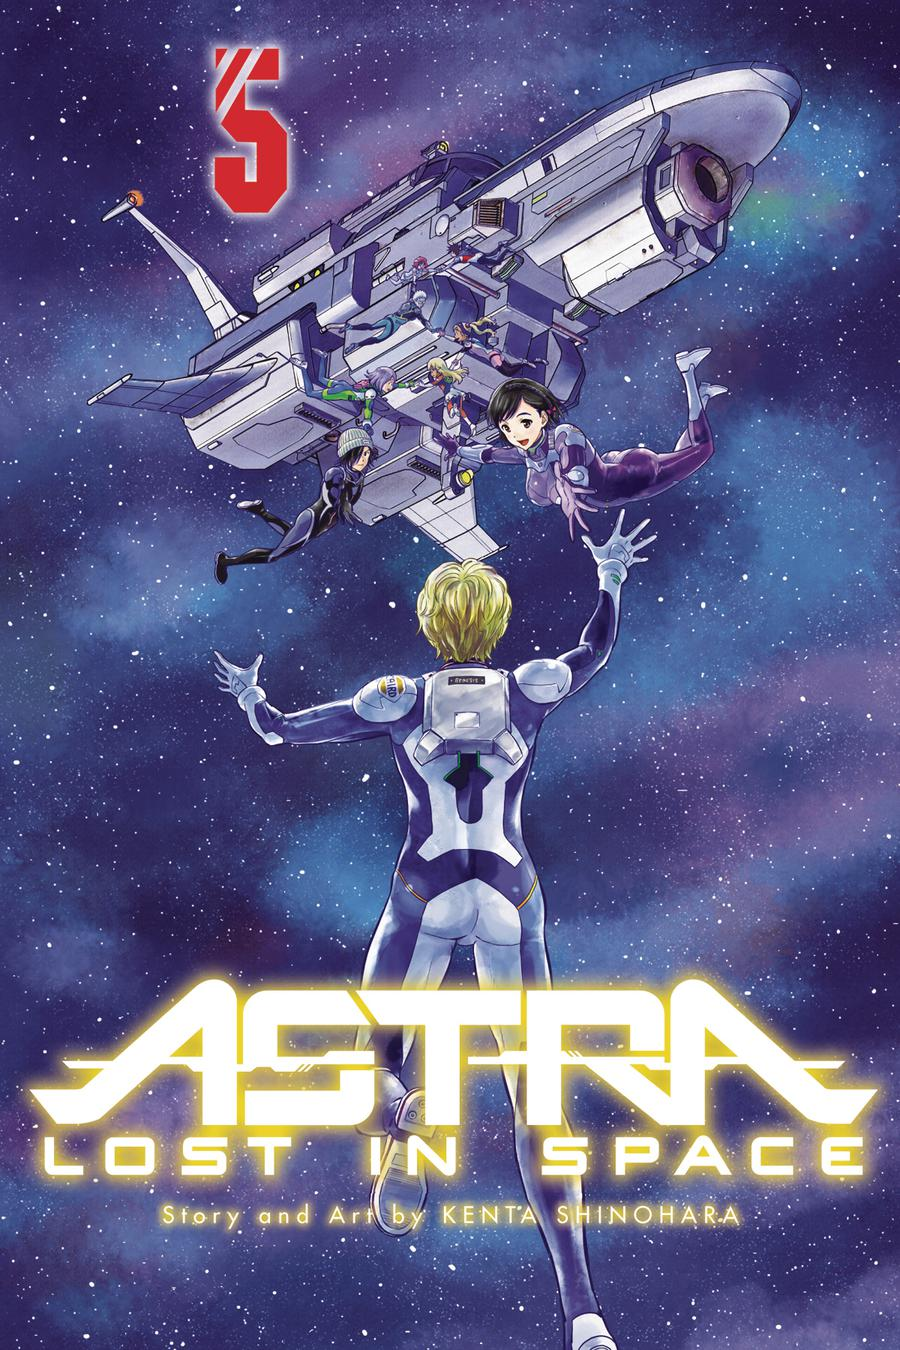 Astra Lost In Space Vol 5 GN